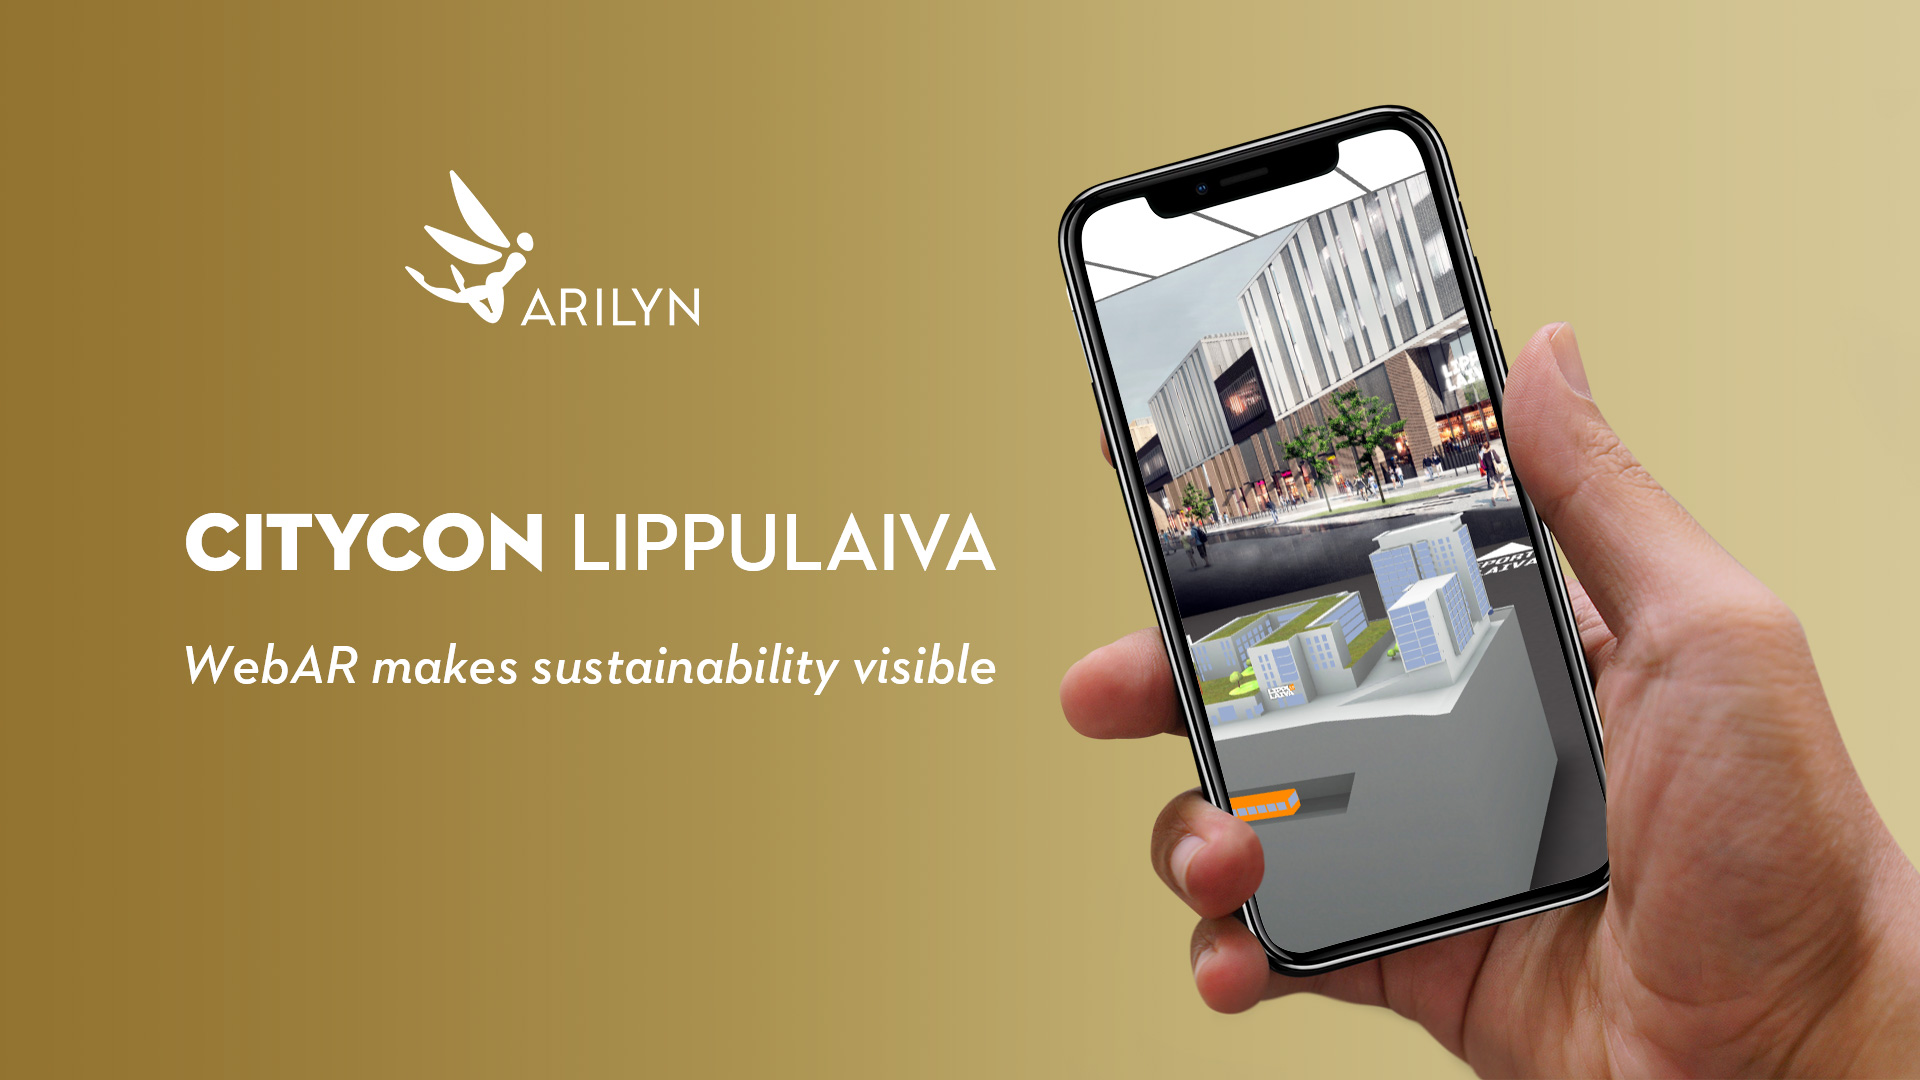 WebAR makes sustainability visible - virtual visit to Lippulaiva